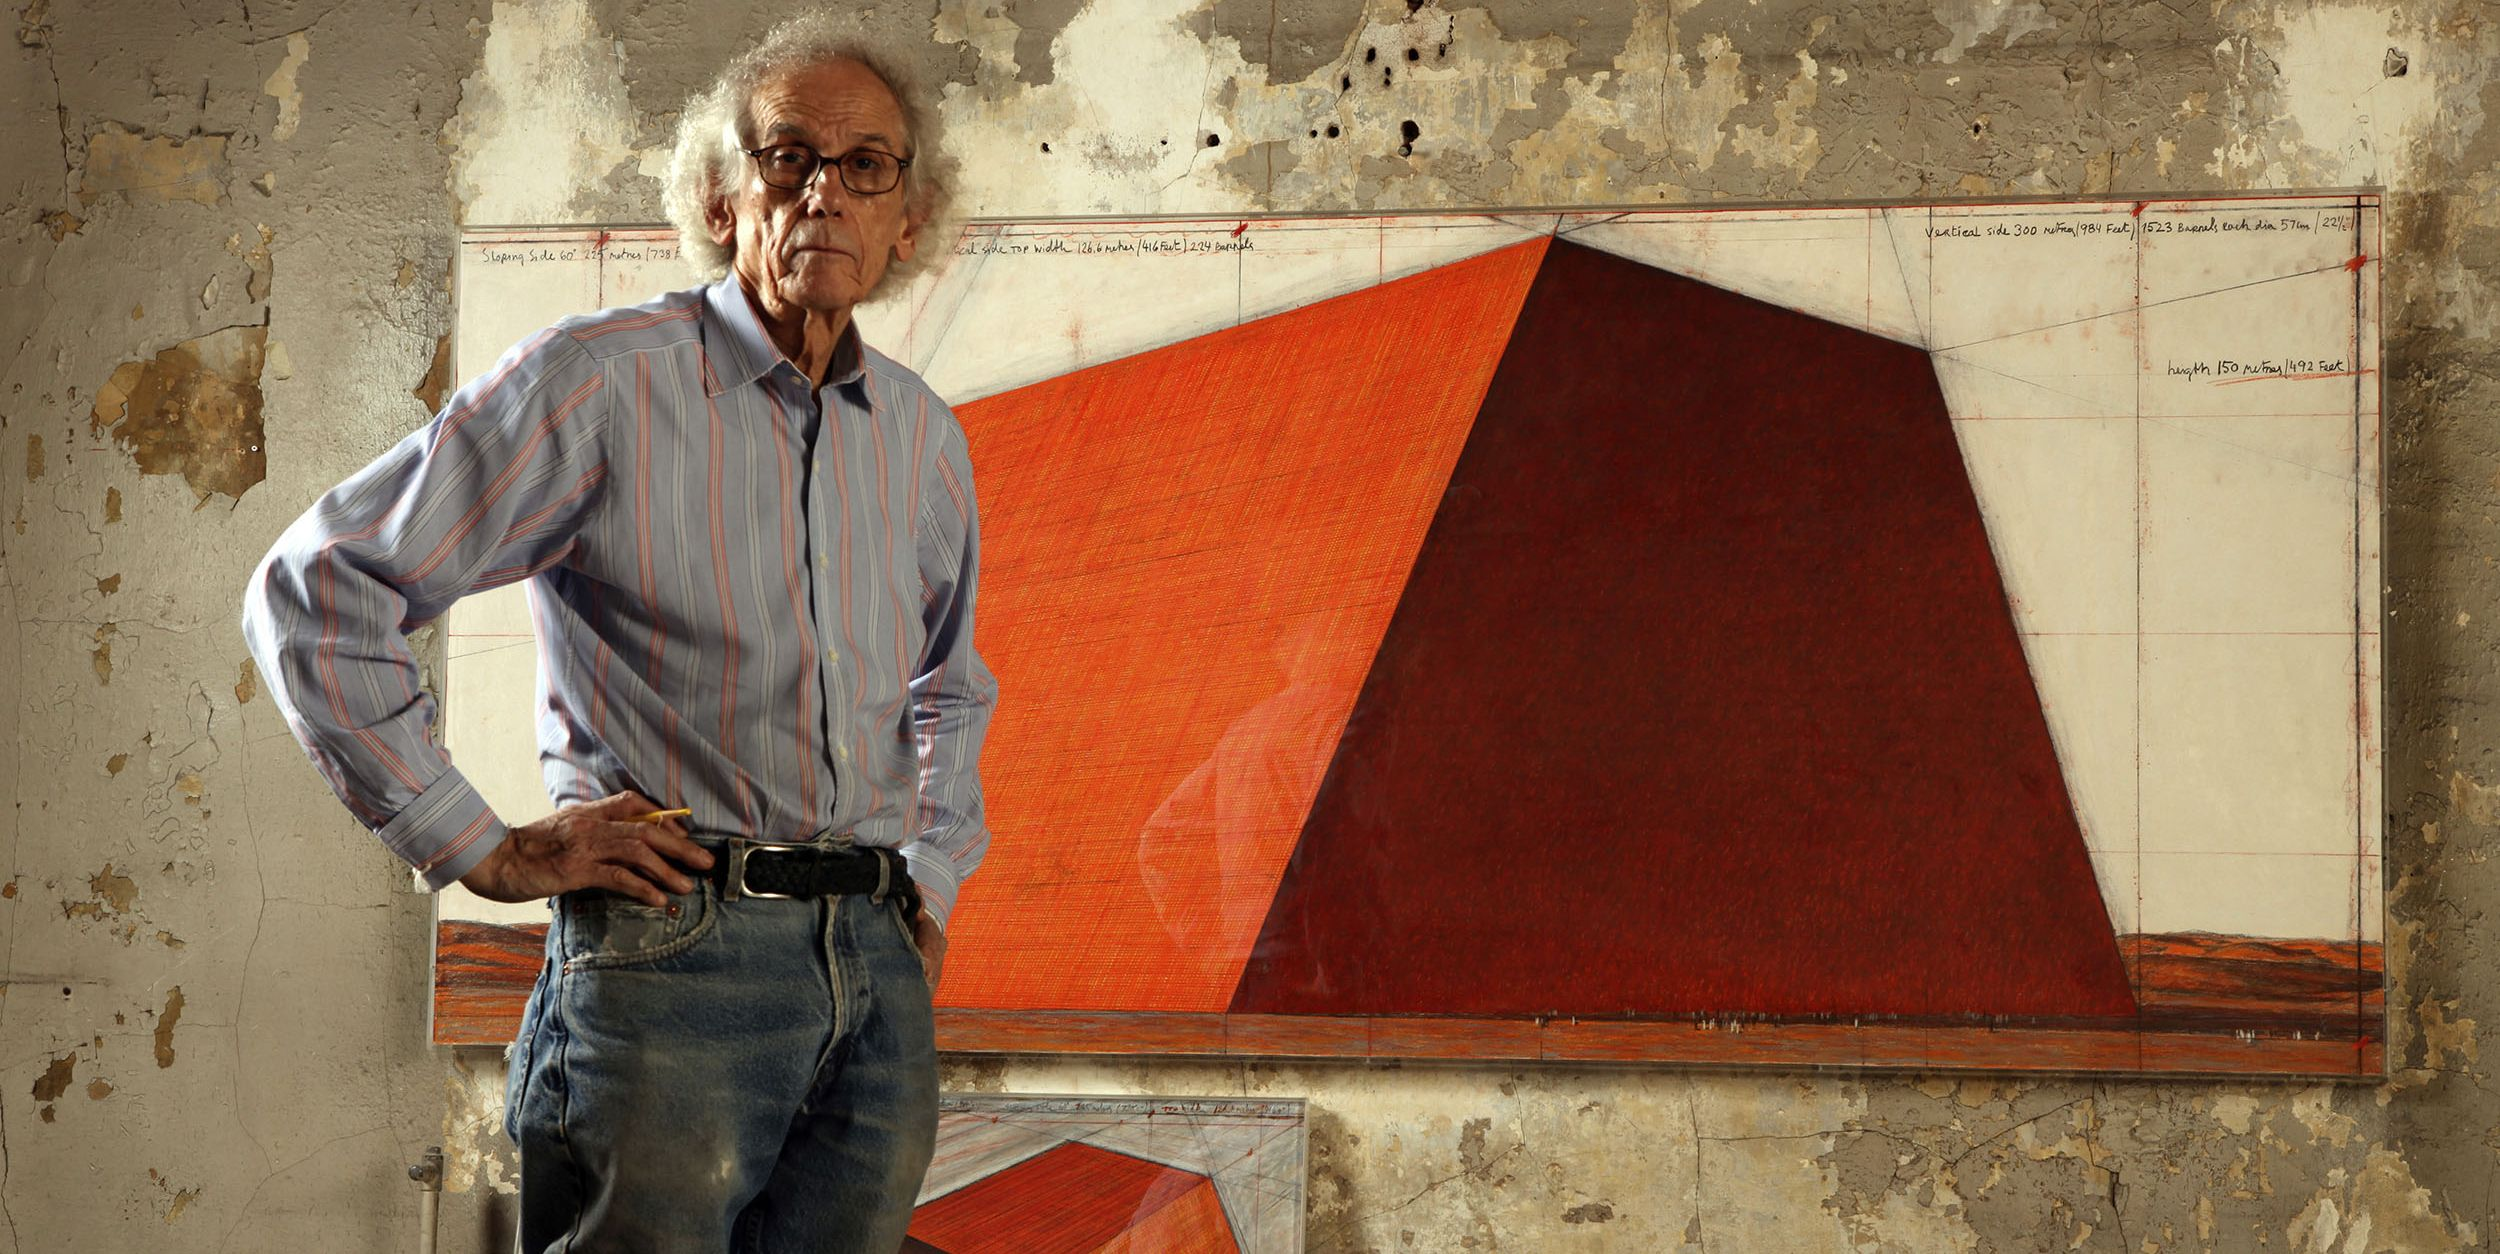 Christo: The Artist Behind The Largest And Most Expensive Sculpture Ever Created